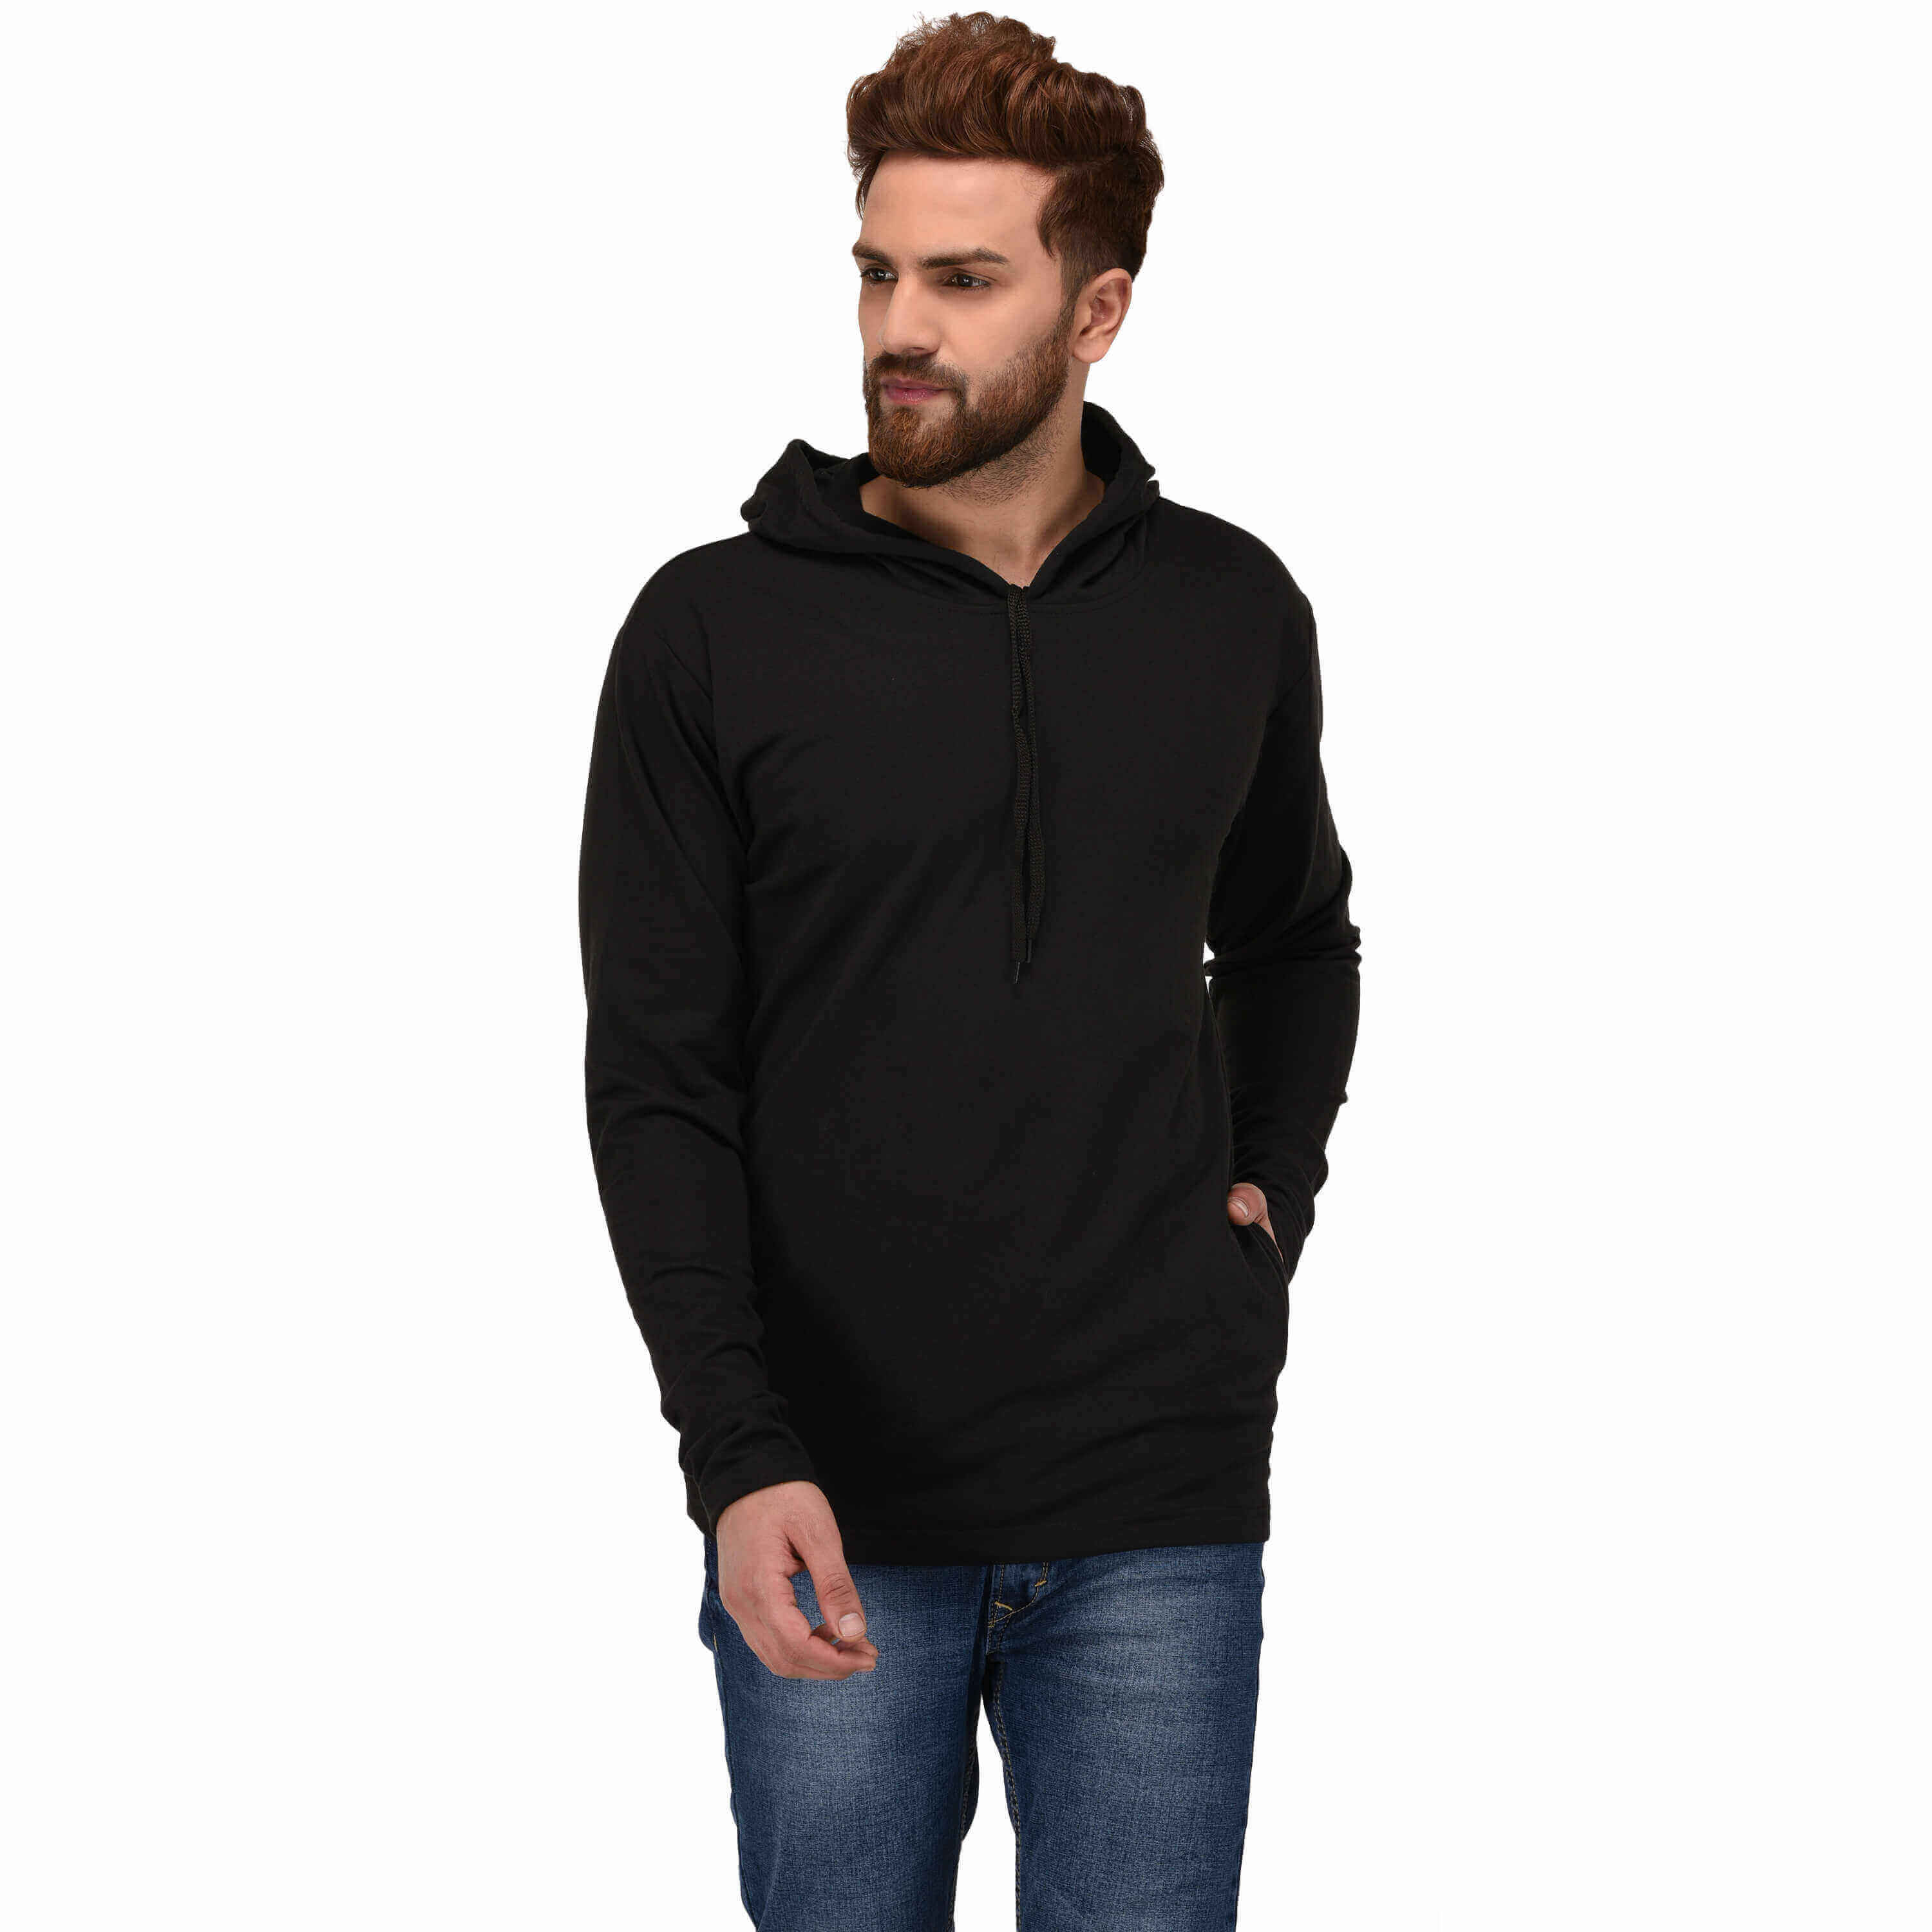 Sports Hoodies Manufacturers in Croatia